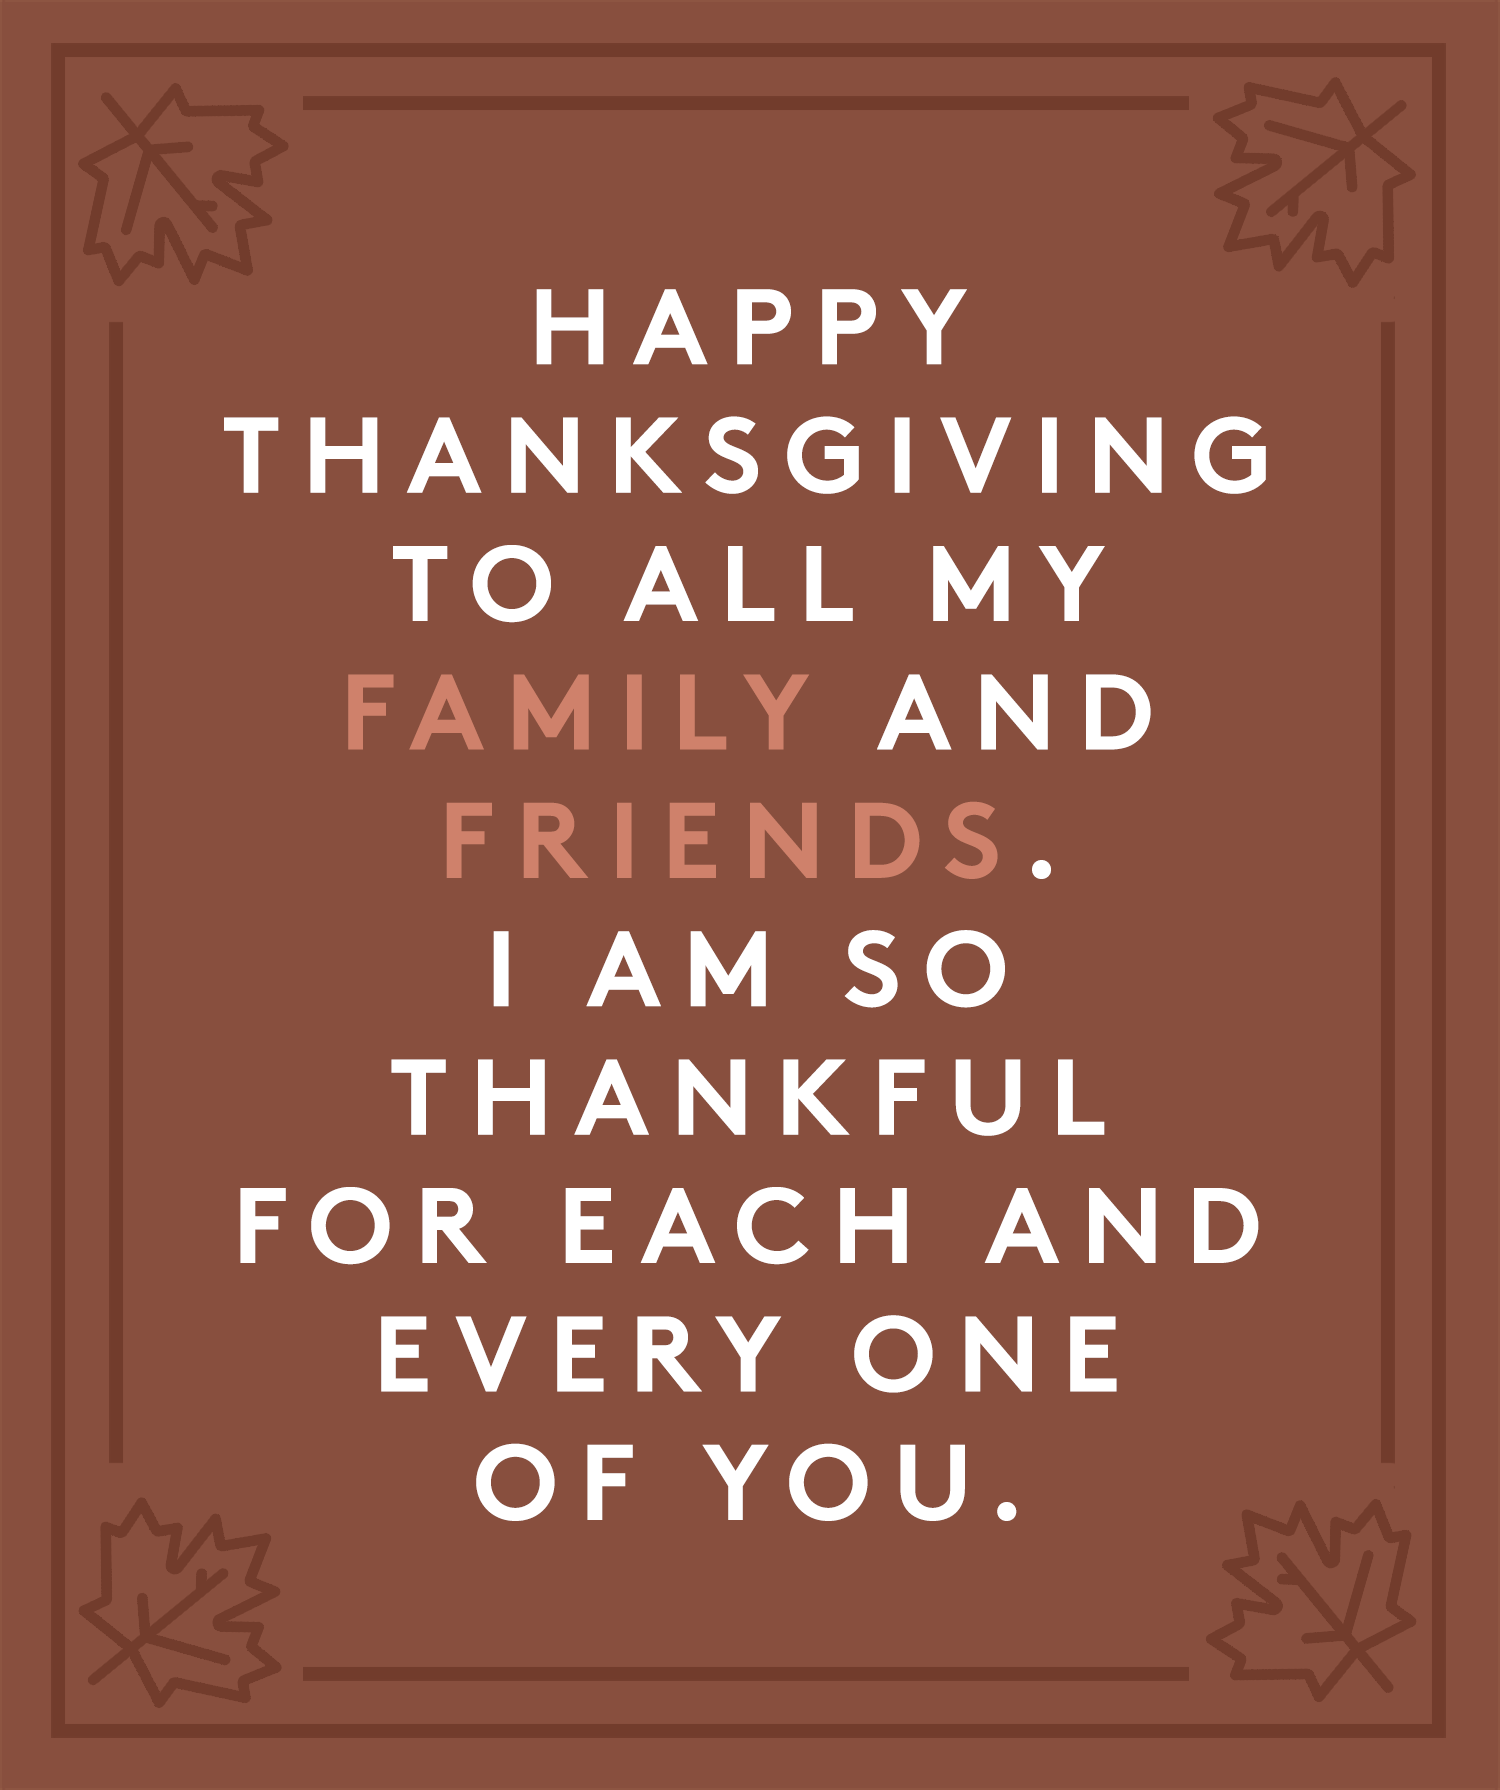 46 Thanksgiving Wishes, Messages, and Greetings to Share ...